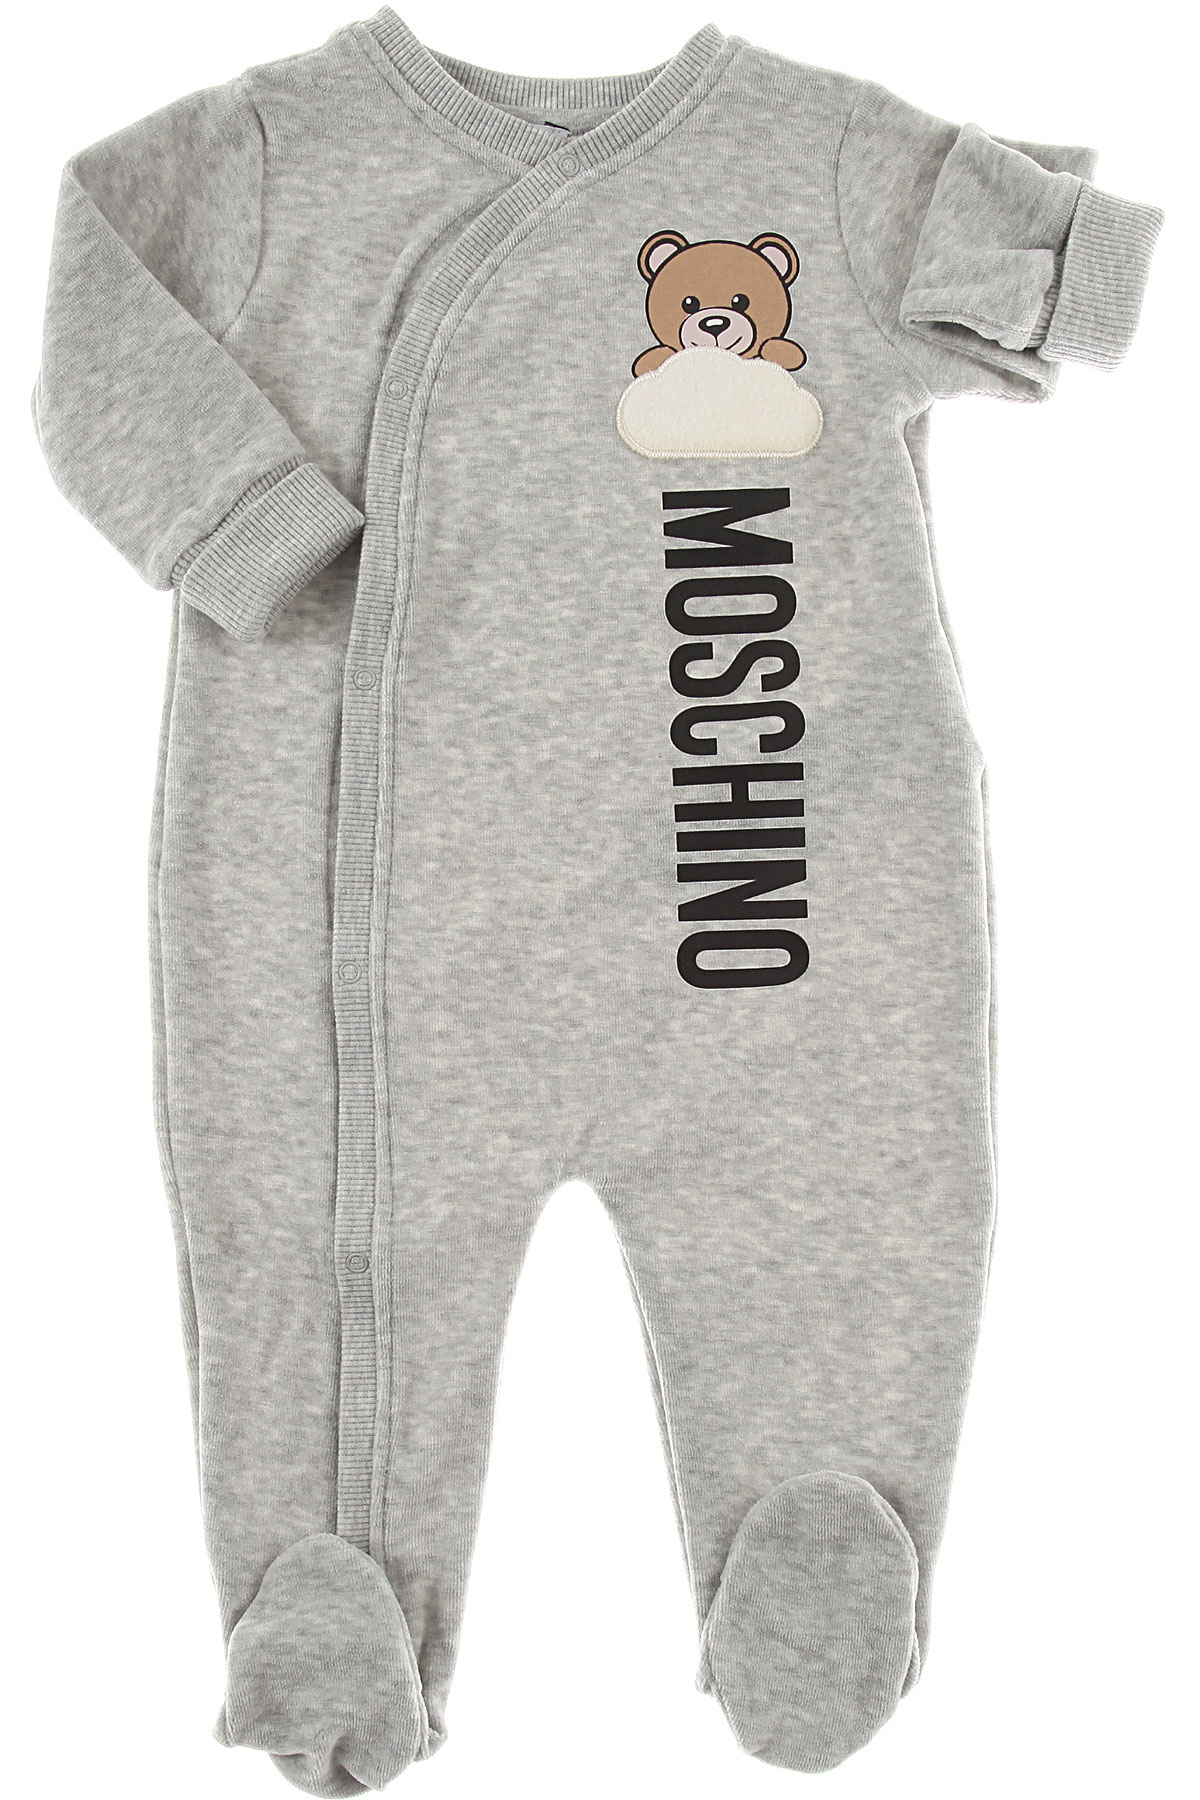 Image of Moschino Suits, Grey, Cotton, 2017, 6M 9M